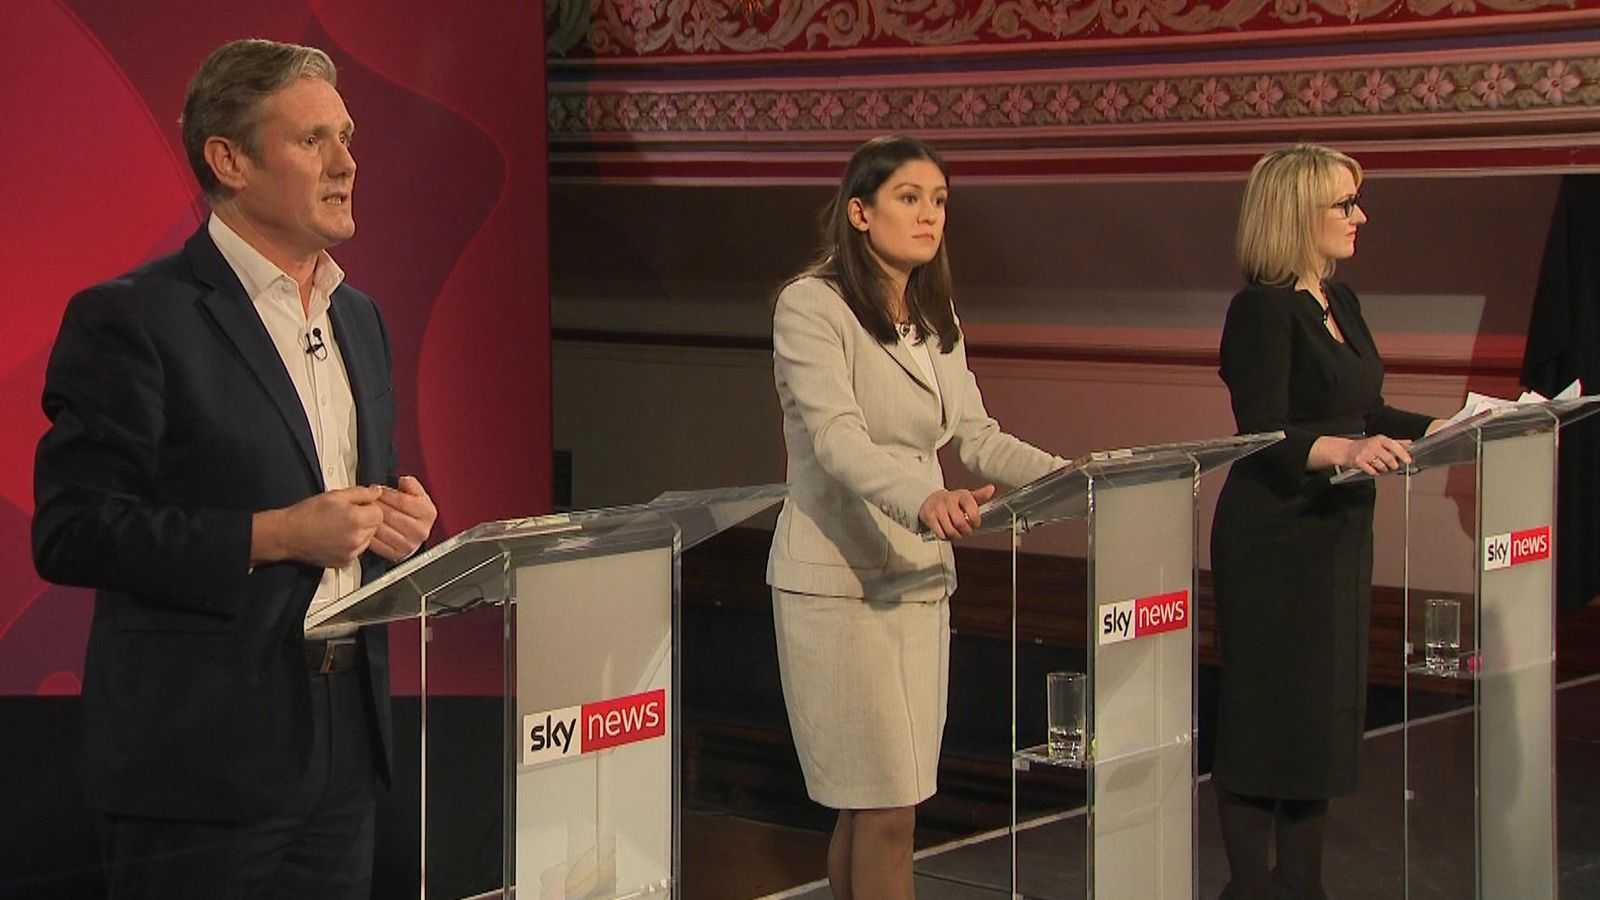 Labour leadership candidates turn on each other over antisemitism action in Sky News debate